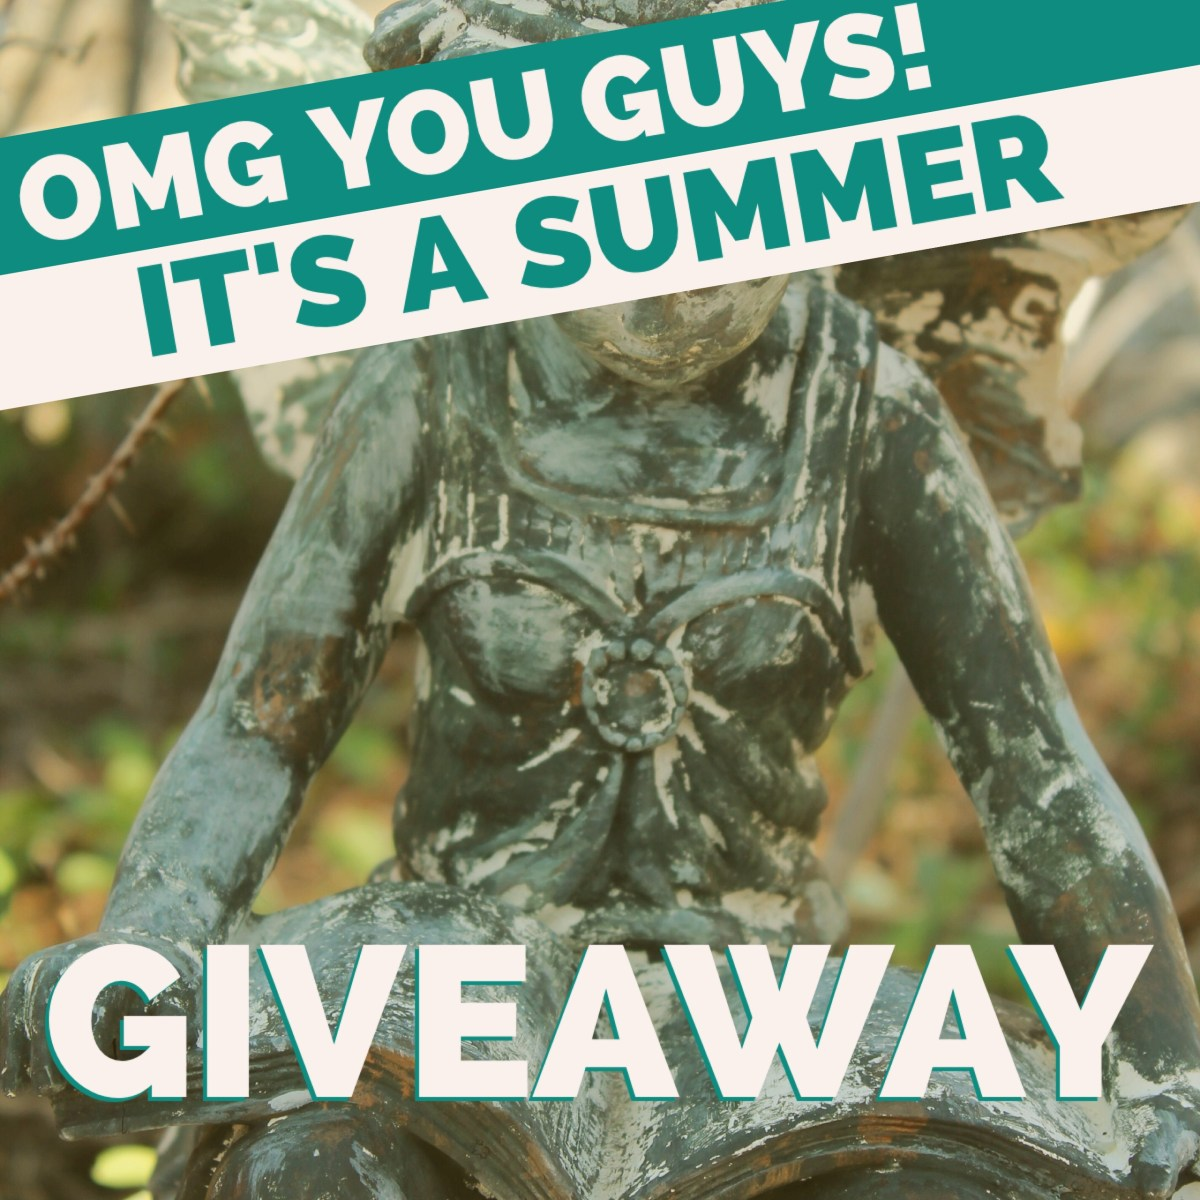 7 Day Gluten Free Start Guide Giveaway!